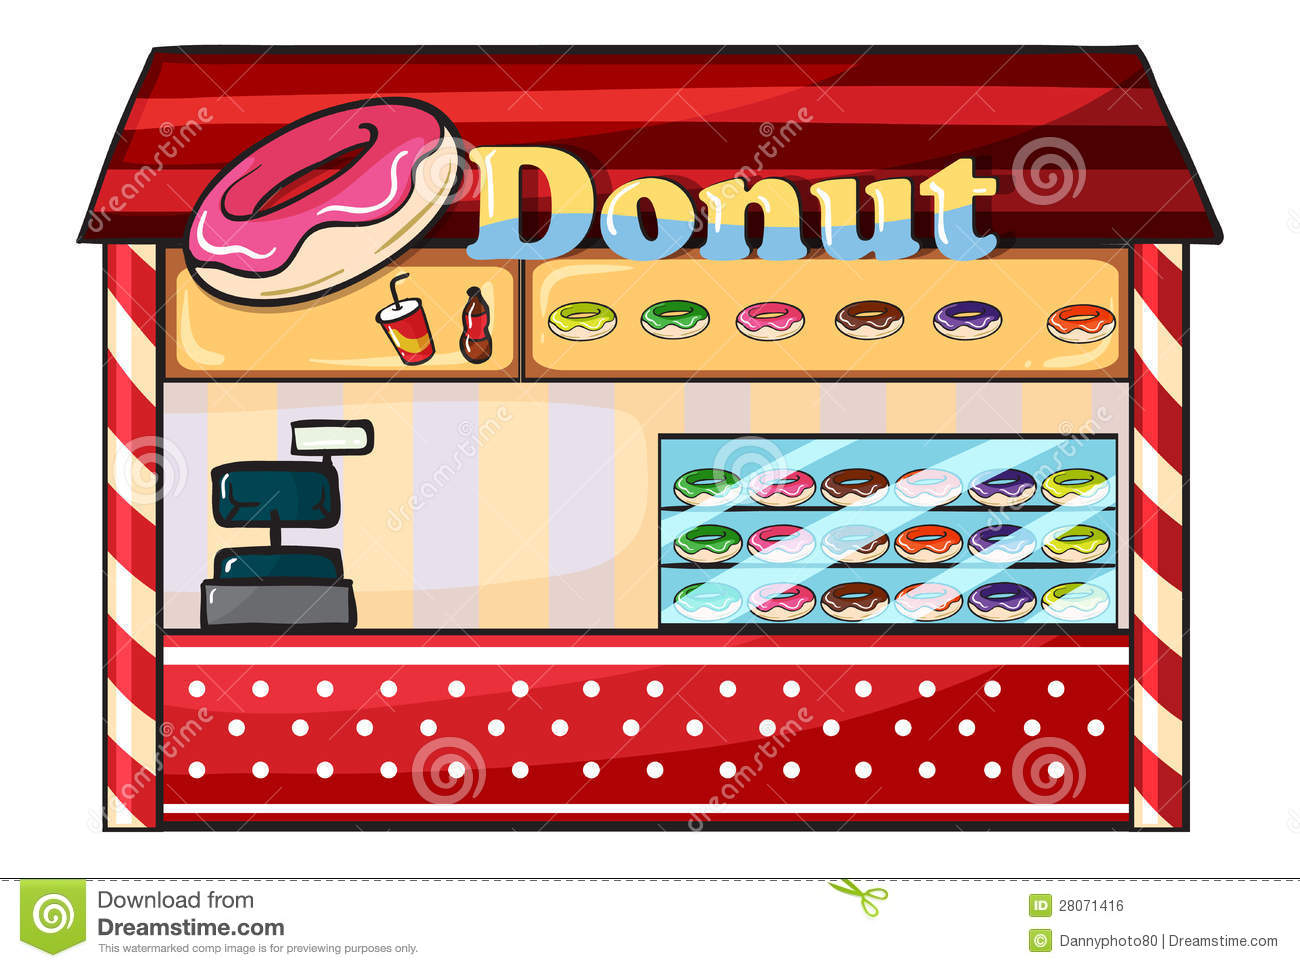 A Donut Shop Royalty Free Stock Image Image 28071416